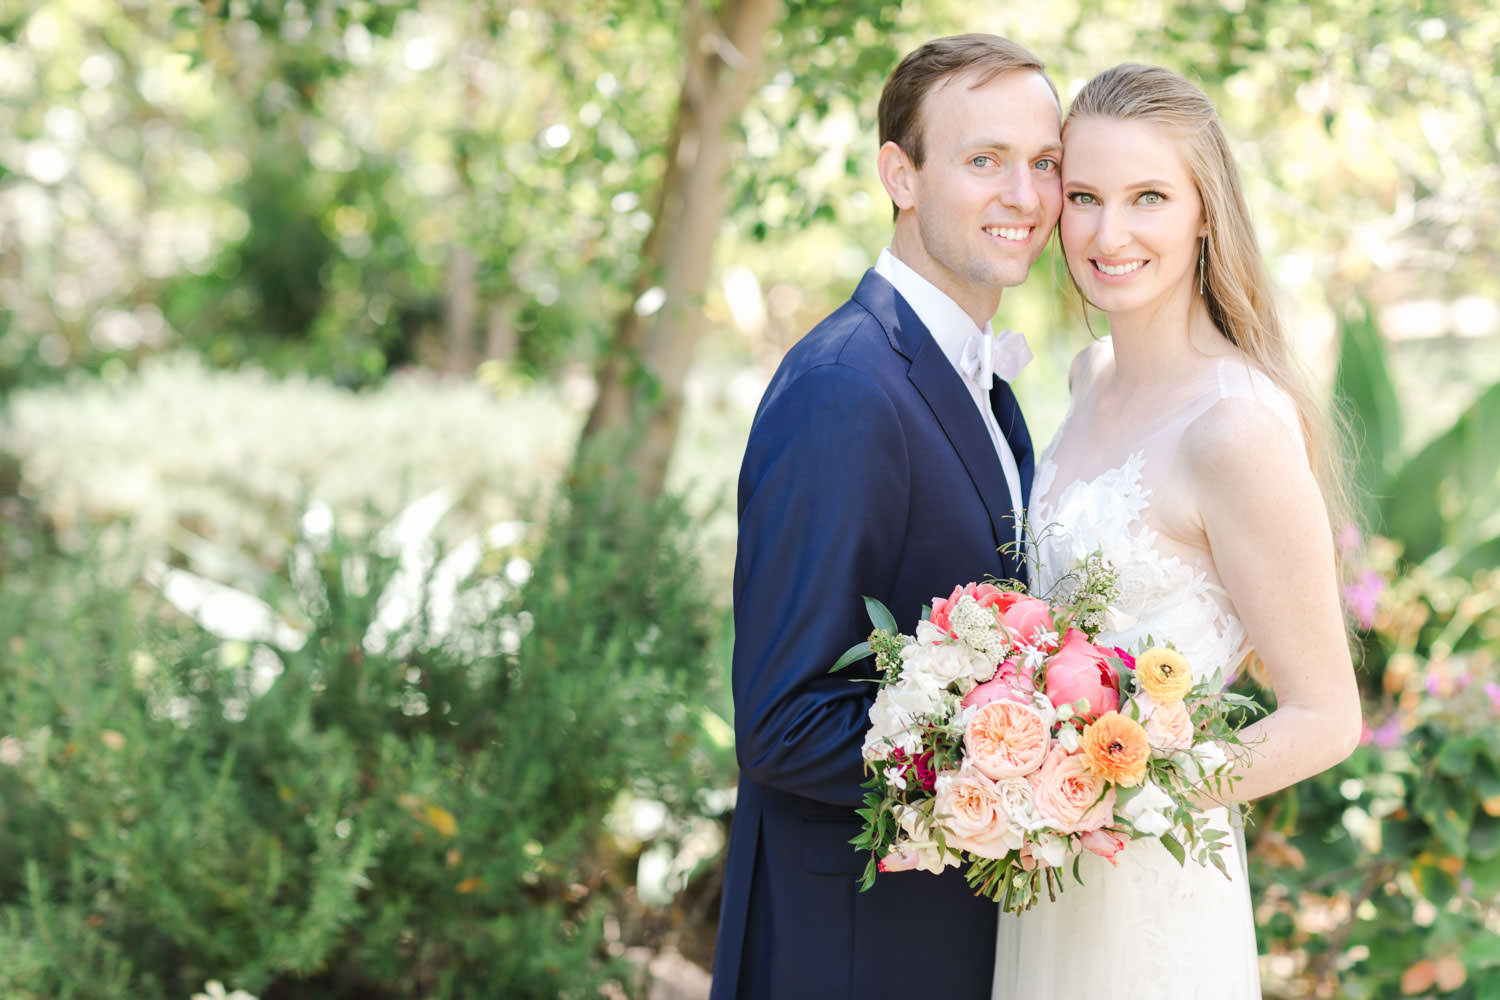 San Diego Botanic Garden Wedding bride and groom portrait captured on film, Cavin Elizabeth Photography